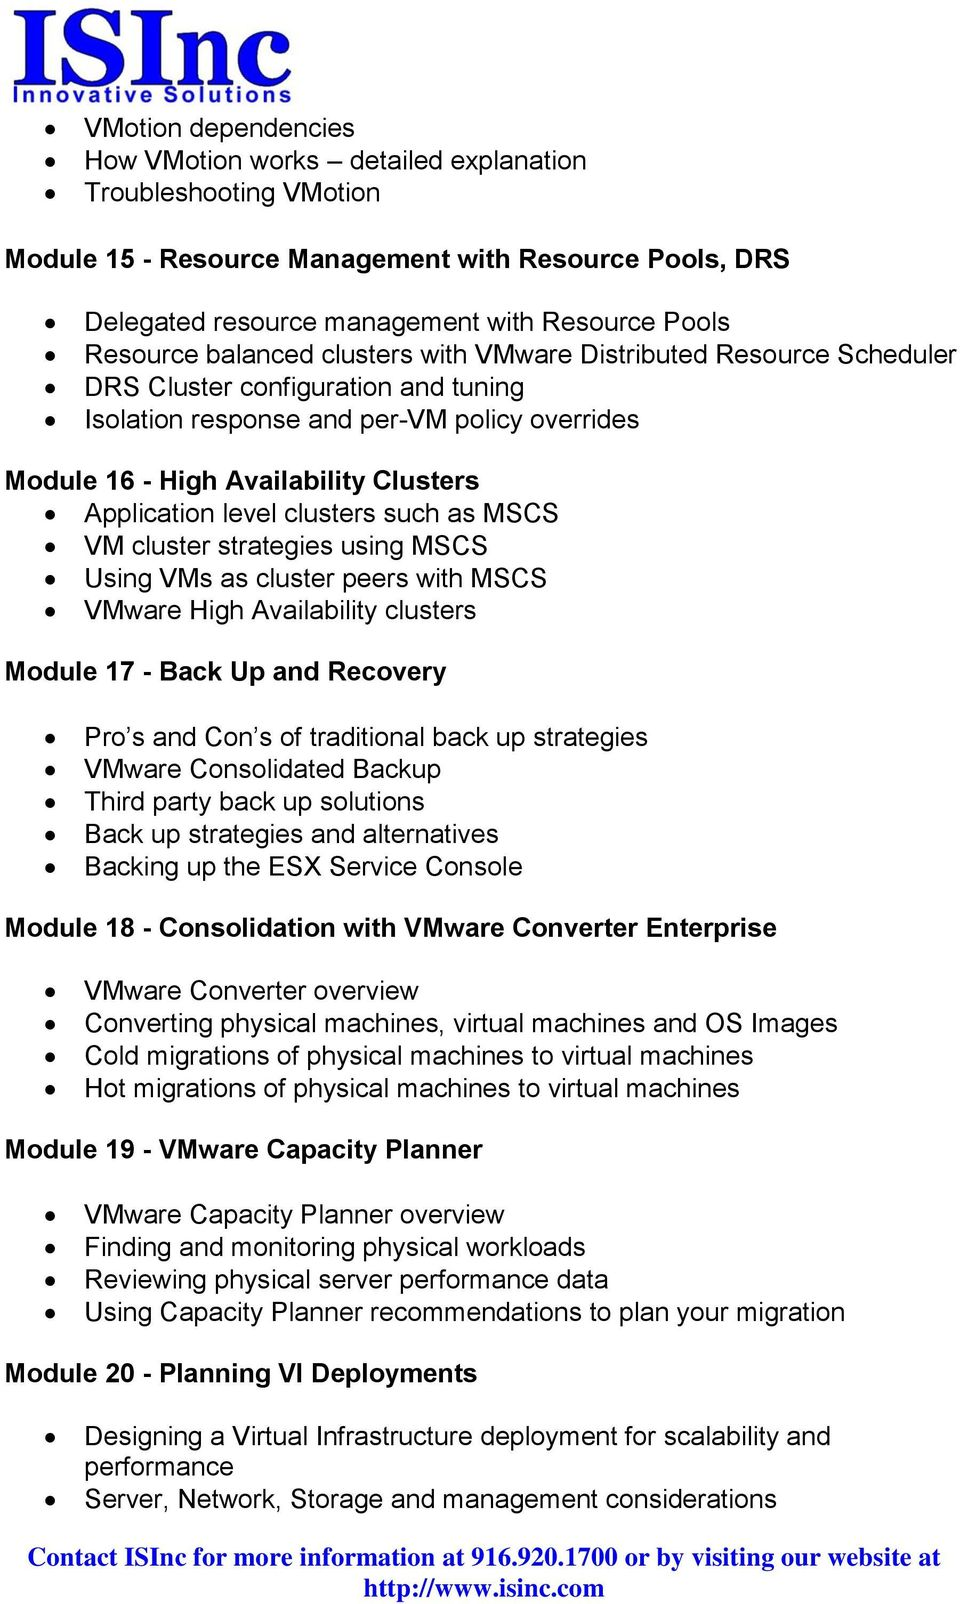 level clusters such as MSCS VM cluster strategies using MSCS Using VMs as cluster peers with MSCS VMware High Availability clusters Module 17 - Back Up and Recovery Pro s and Con s of traditional